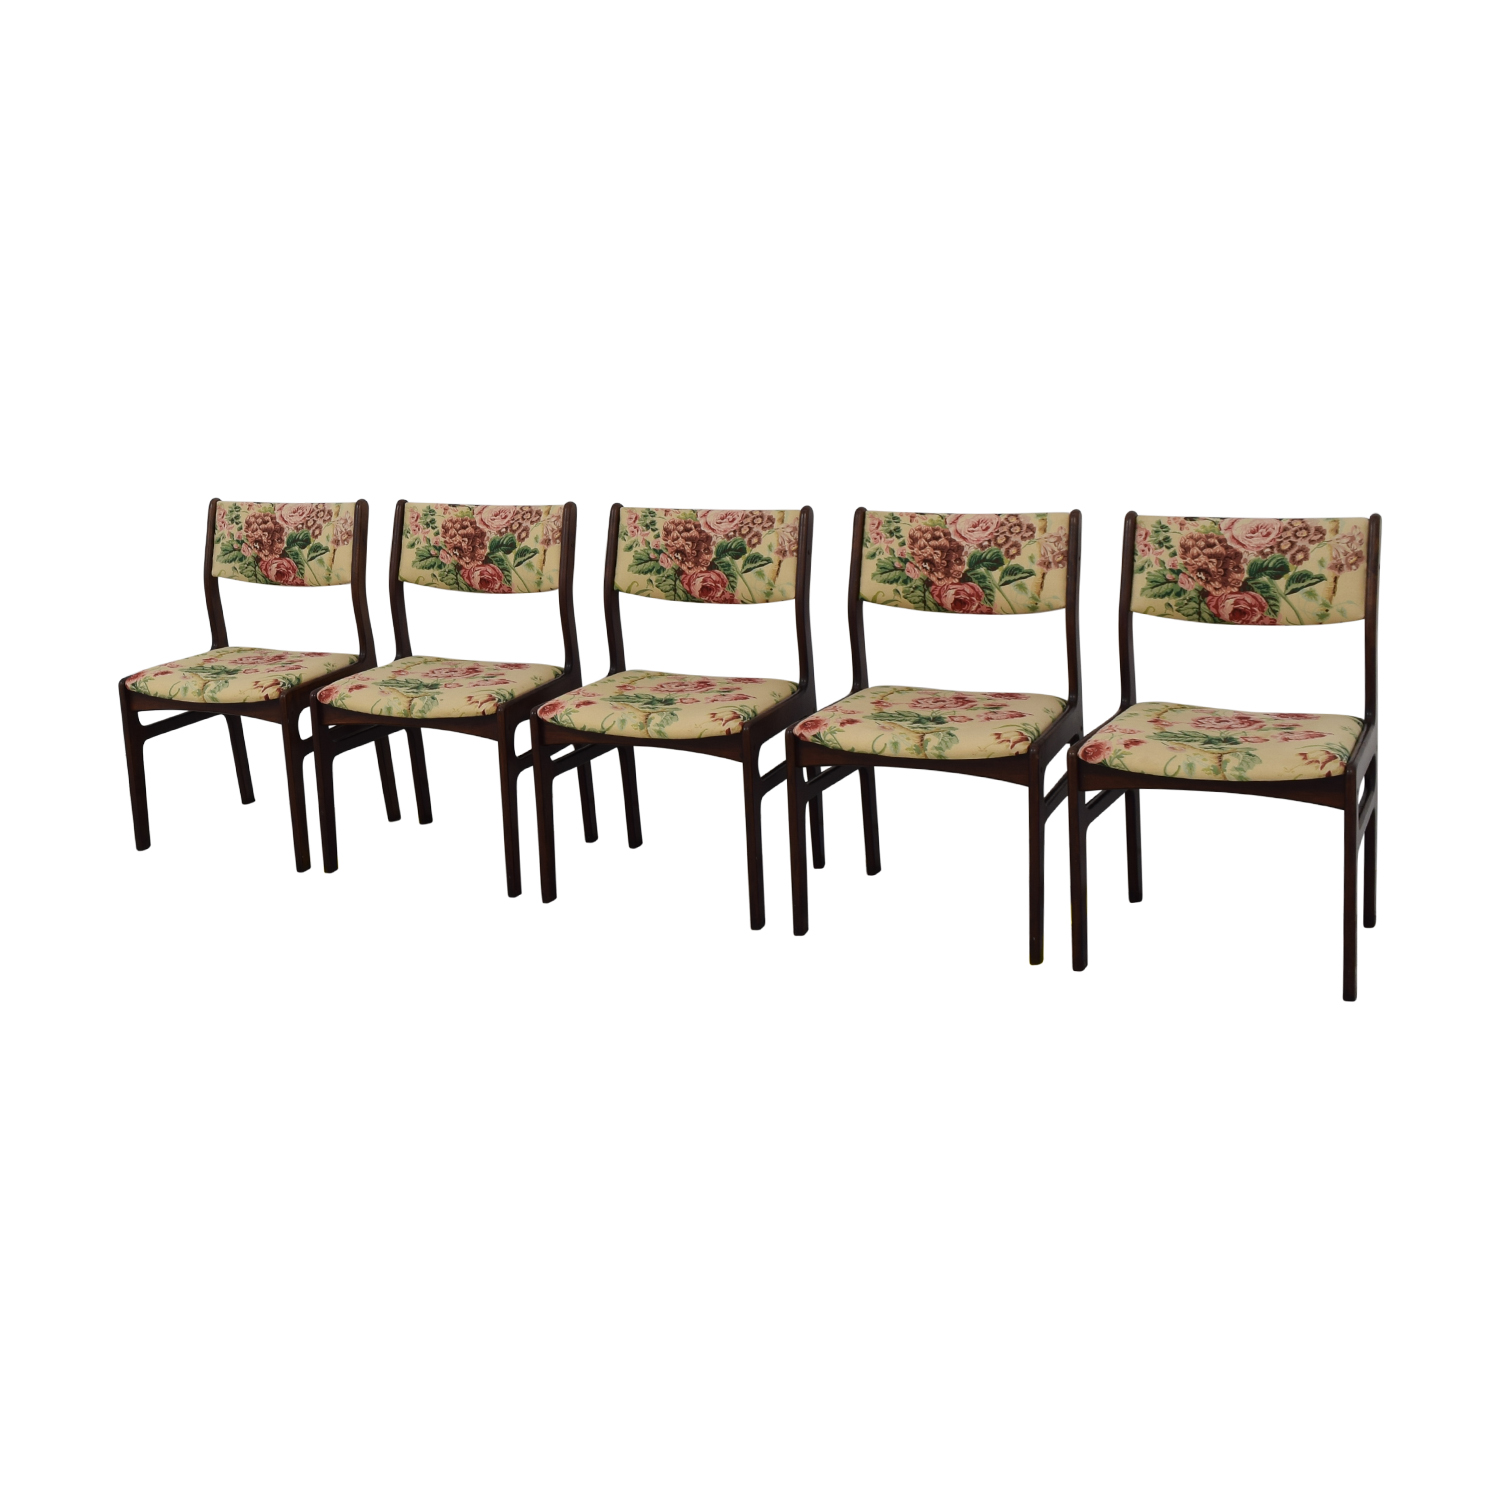 Dyrlund Dyrlund Danish Modern Dining Chairs price